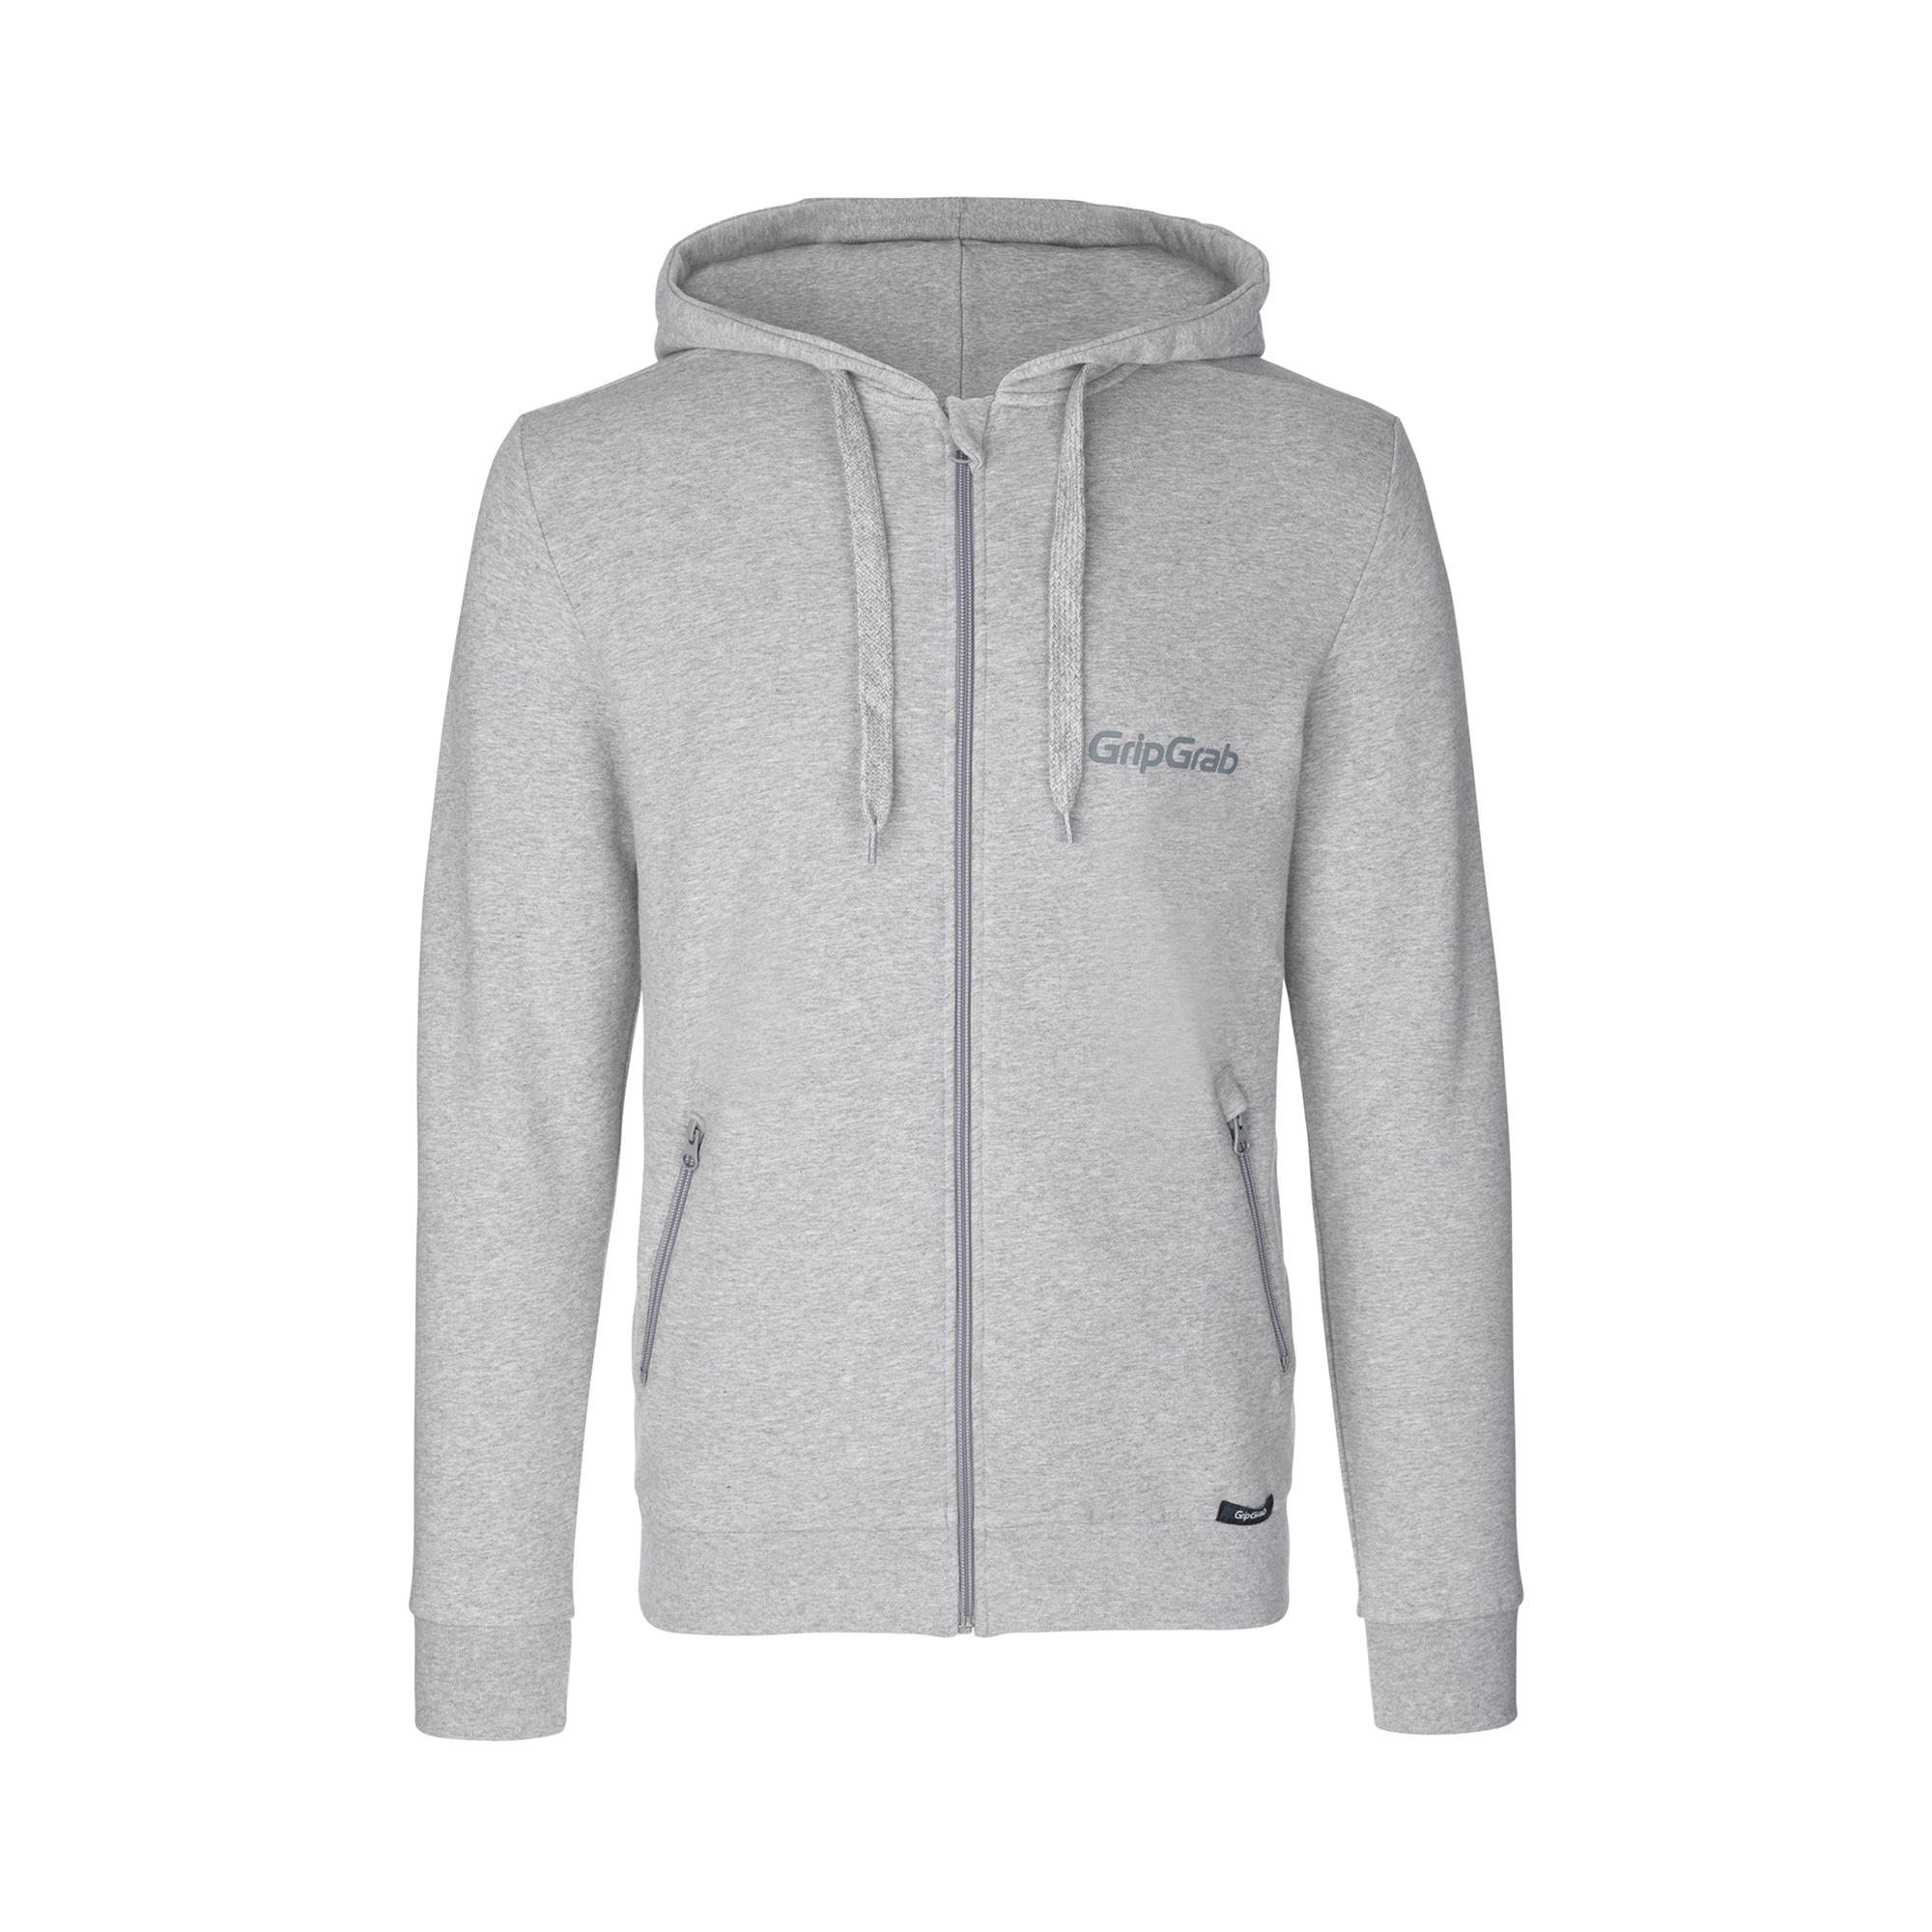 GripGrab Casual Vest Unisex Grijs - Icon Long Sleeve Organic Cotton Zipper Hoodie Grey